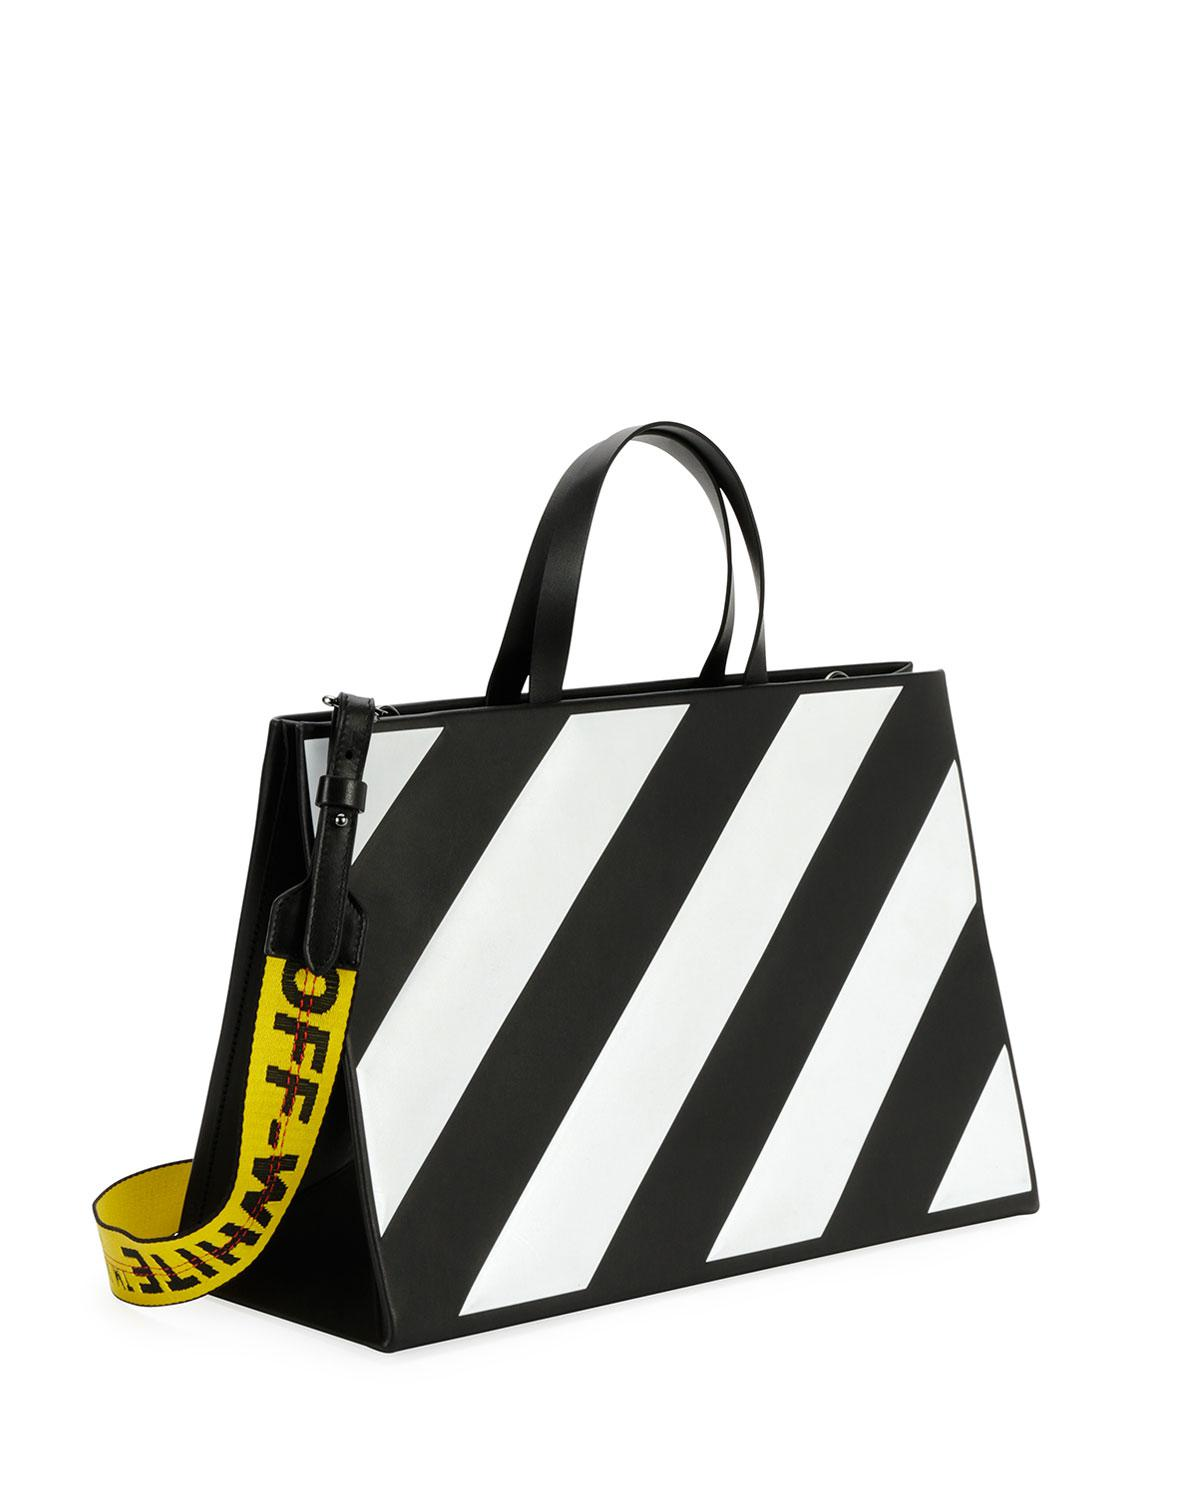 592d46cce223 Mens Black  Lyst - Off-White CO Virgil Abloh Diagonal Box Leather Tote in  Black - Save ...